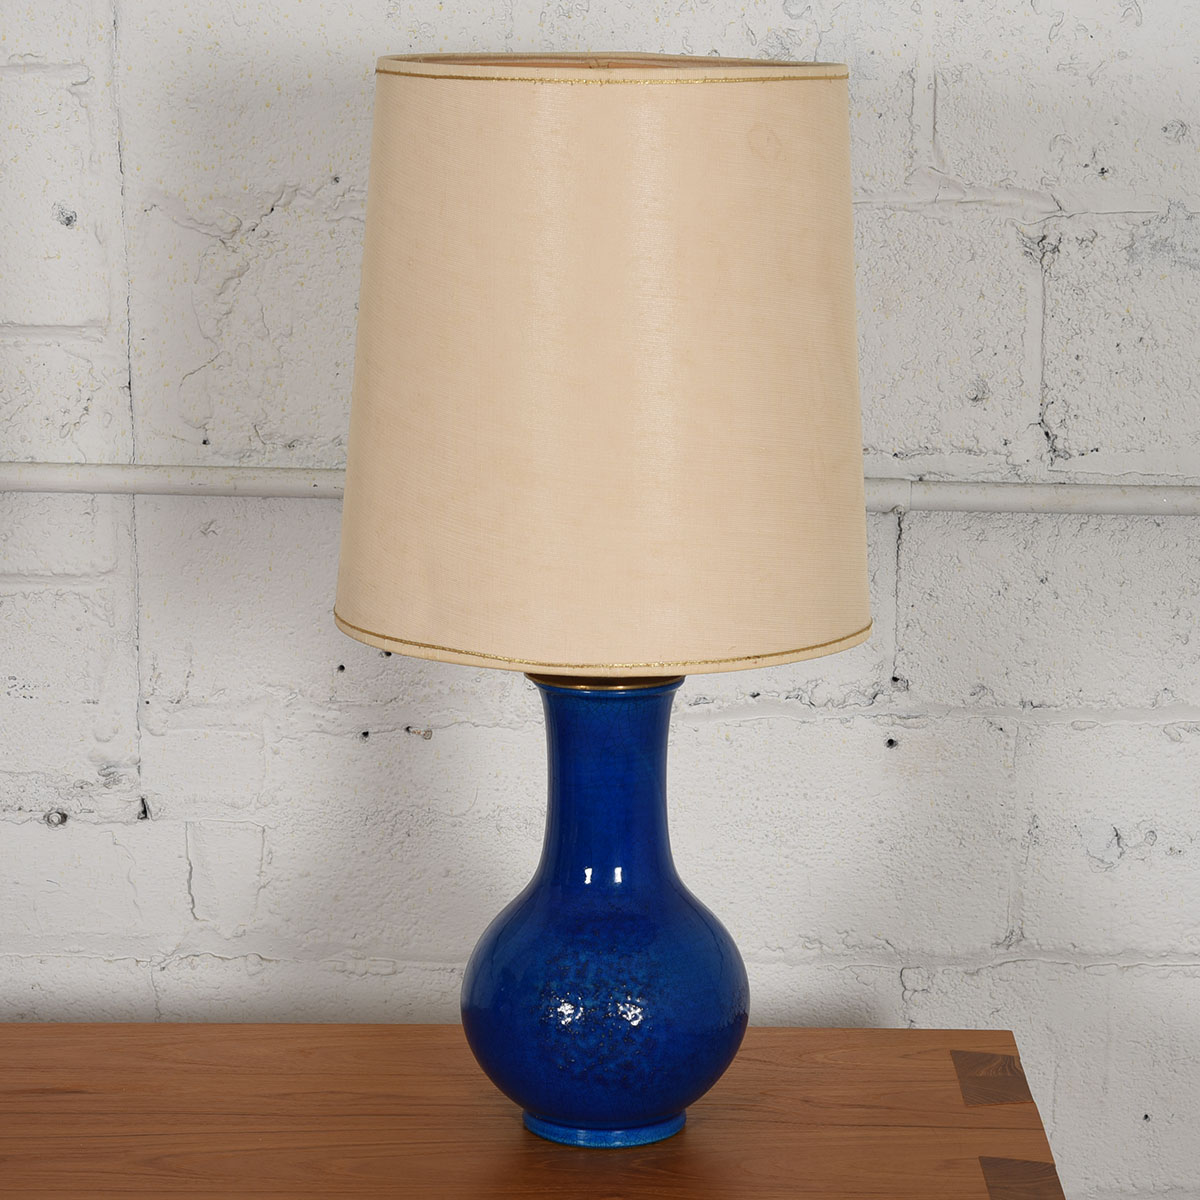 Modern mobler c1970s pottery table lamp with blue glaze by pol chambost france mozeypictures Choice Image